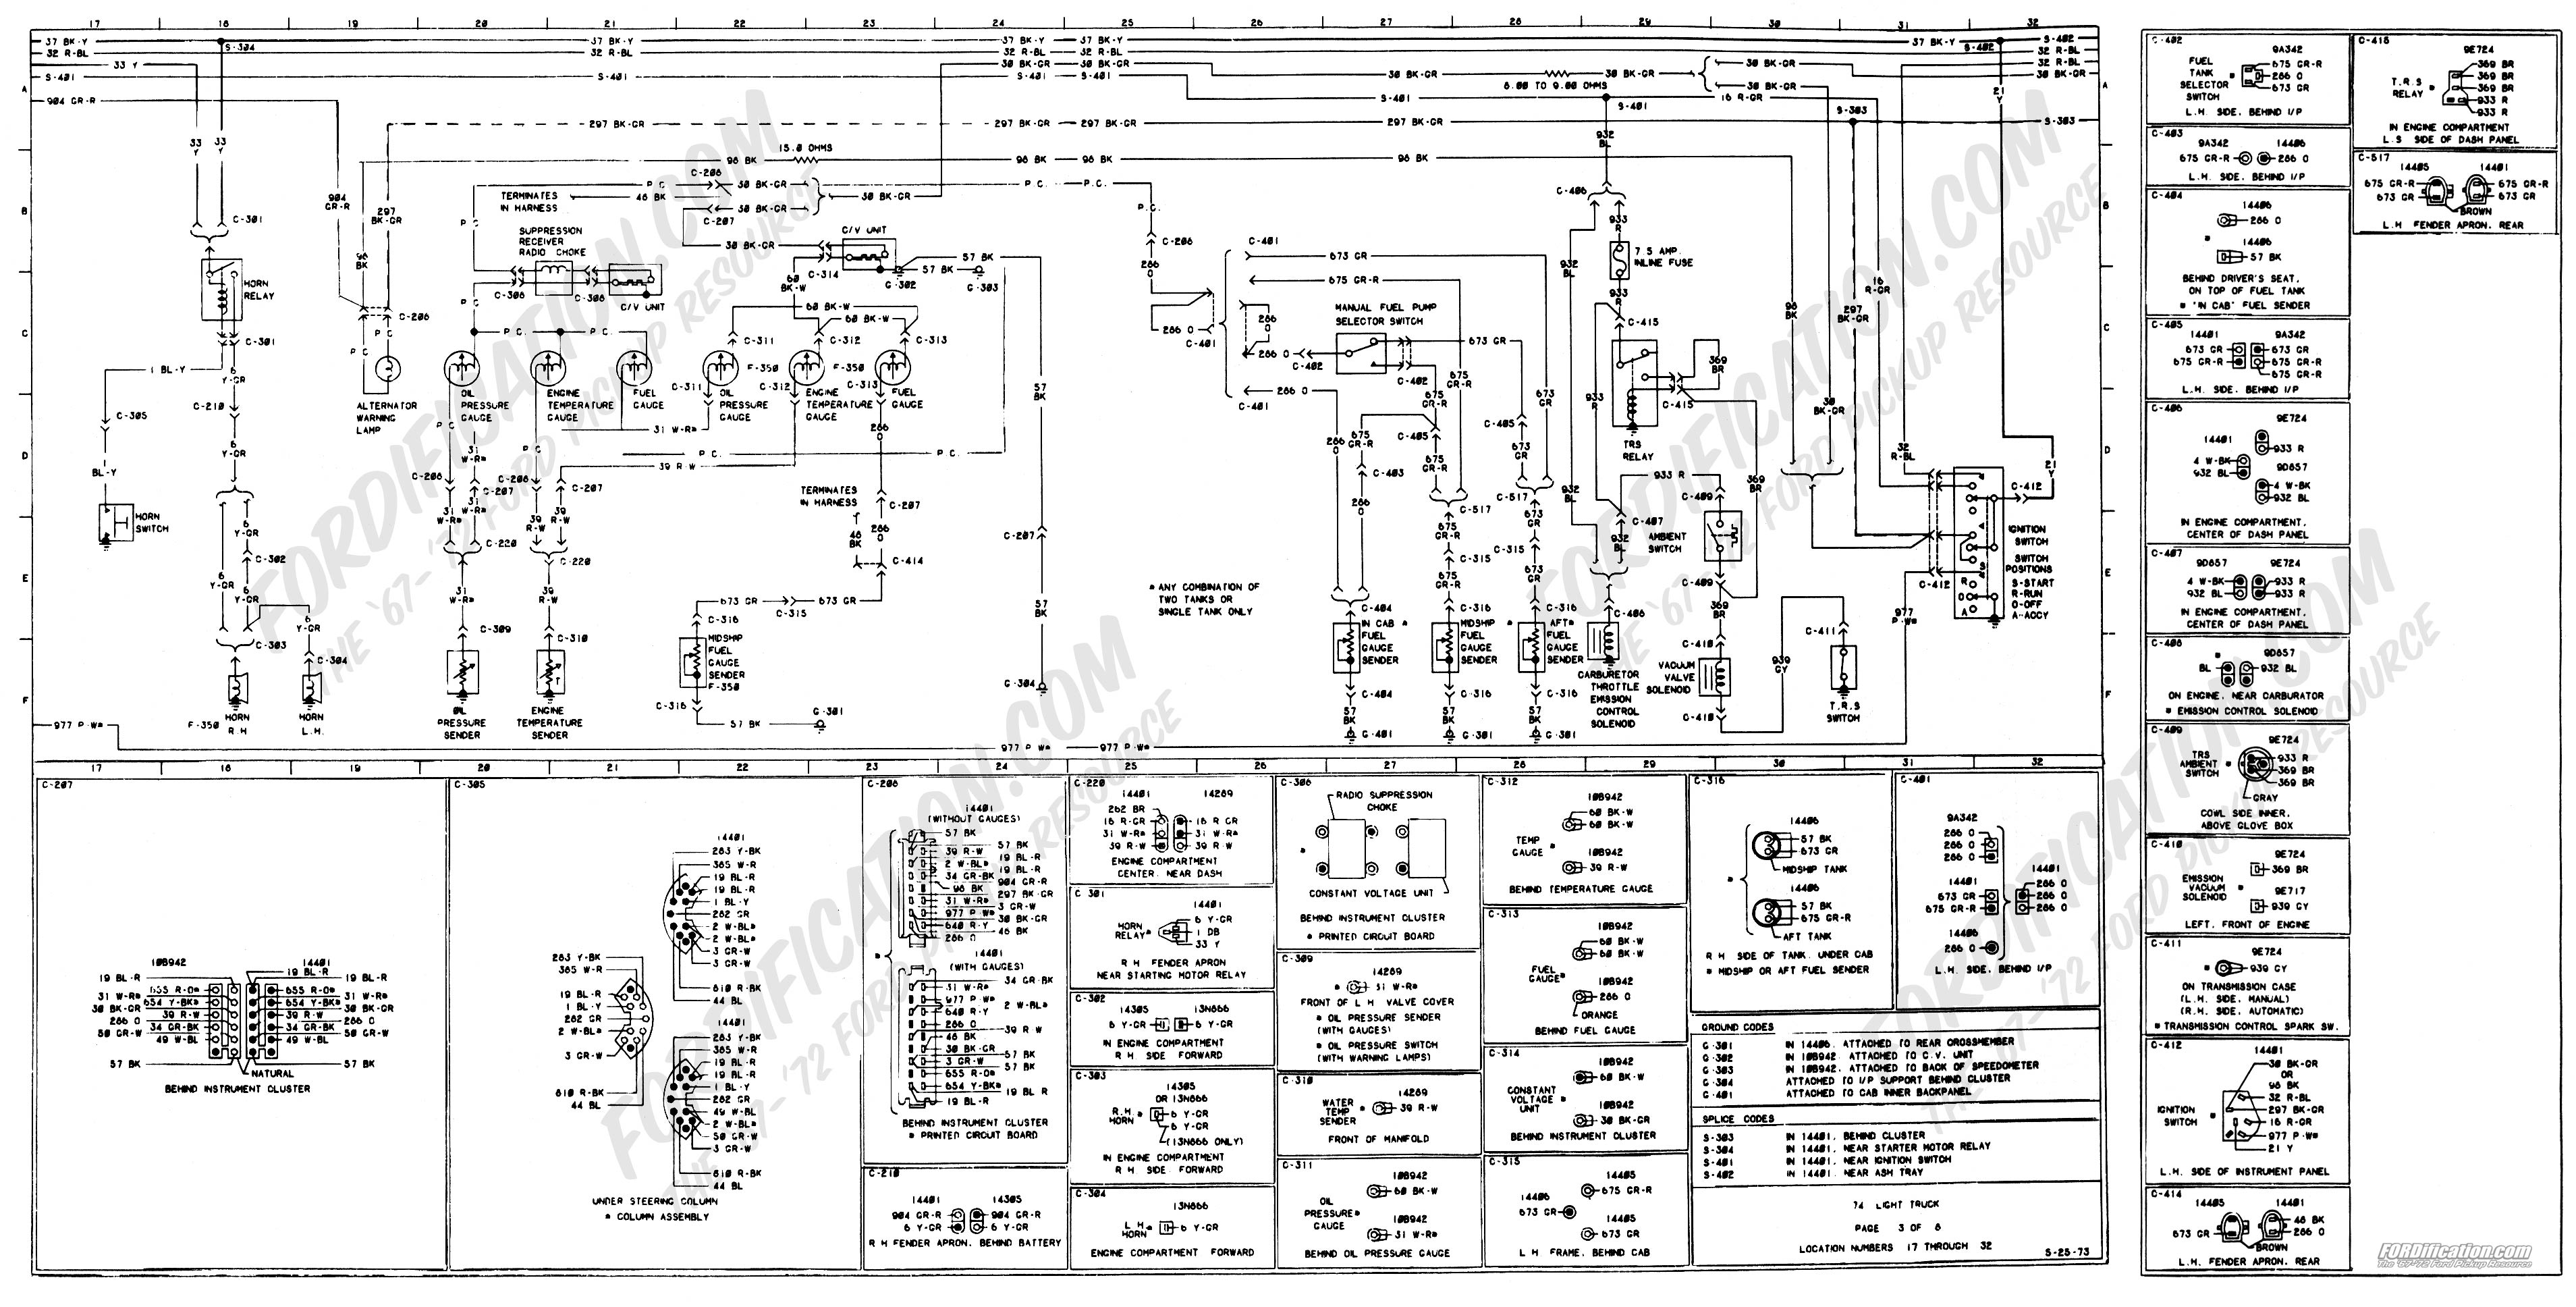 1973 1979 ford truck wiring diagrams & schematics fordification net 2003 Ford E350 Wiring-Diagram  2010 ford f 350 tail light wiring diagram 2010 Toyota Tundra Wiring Schematic Ford Super Duty Wiring Diagram